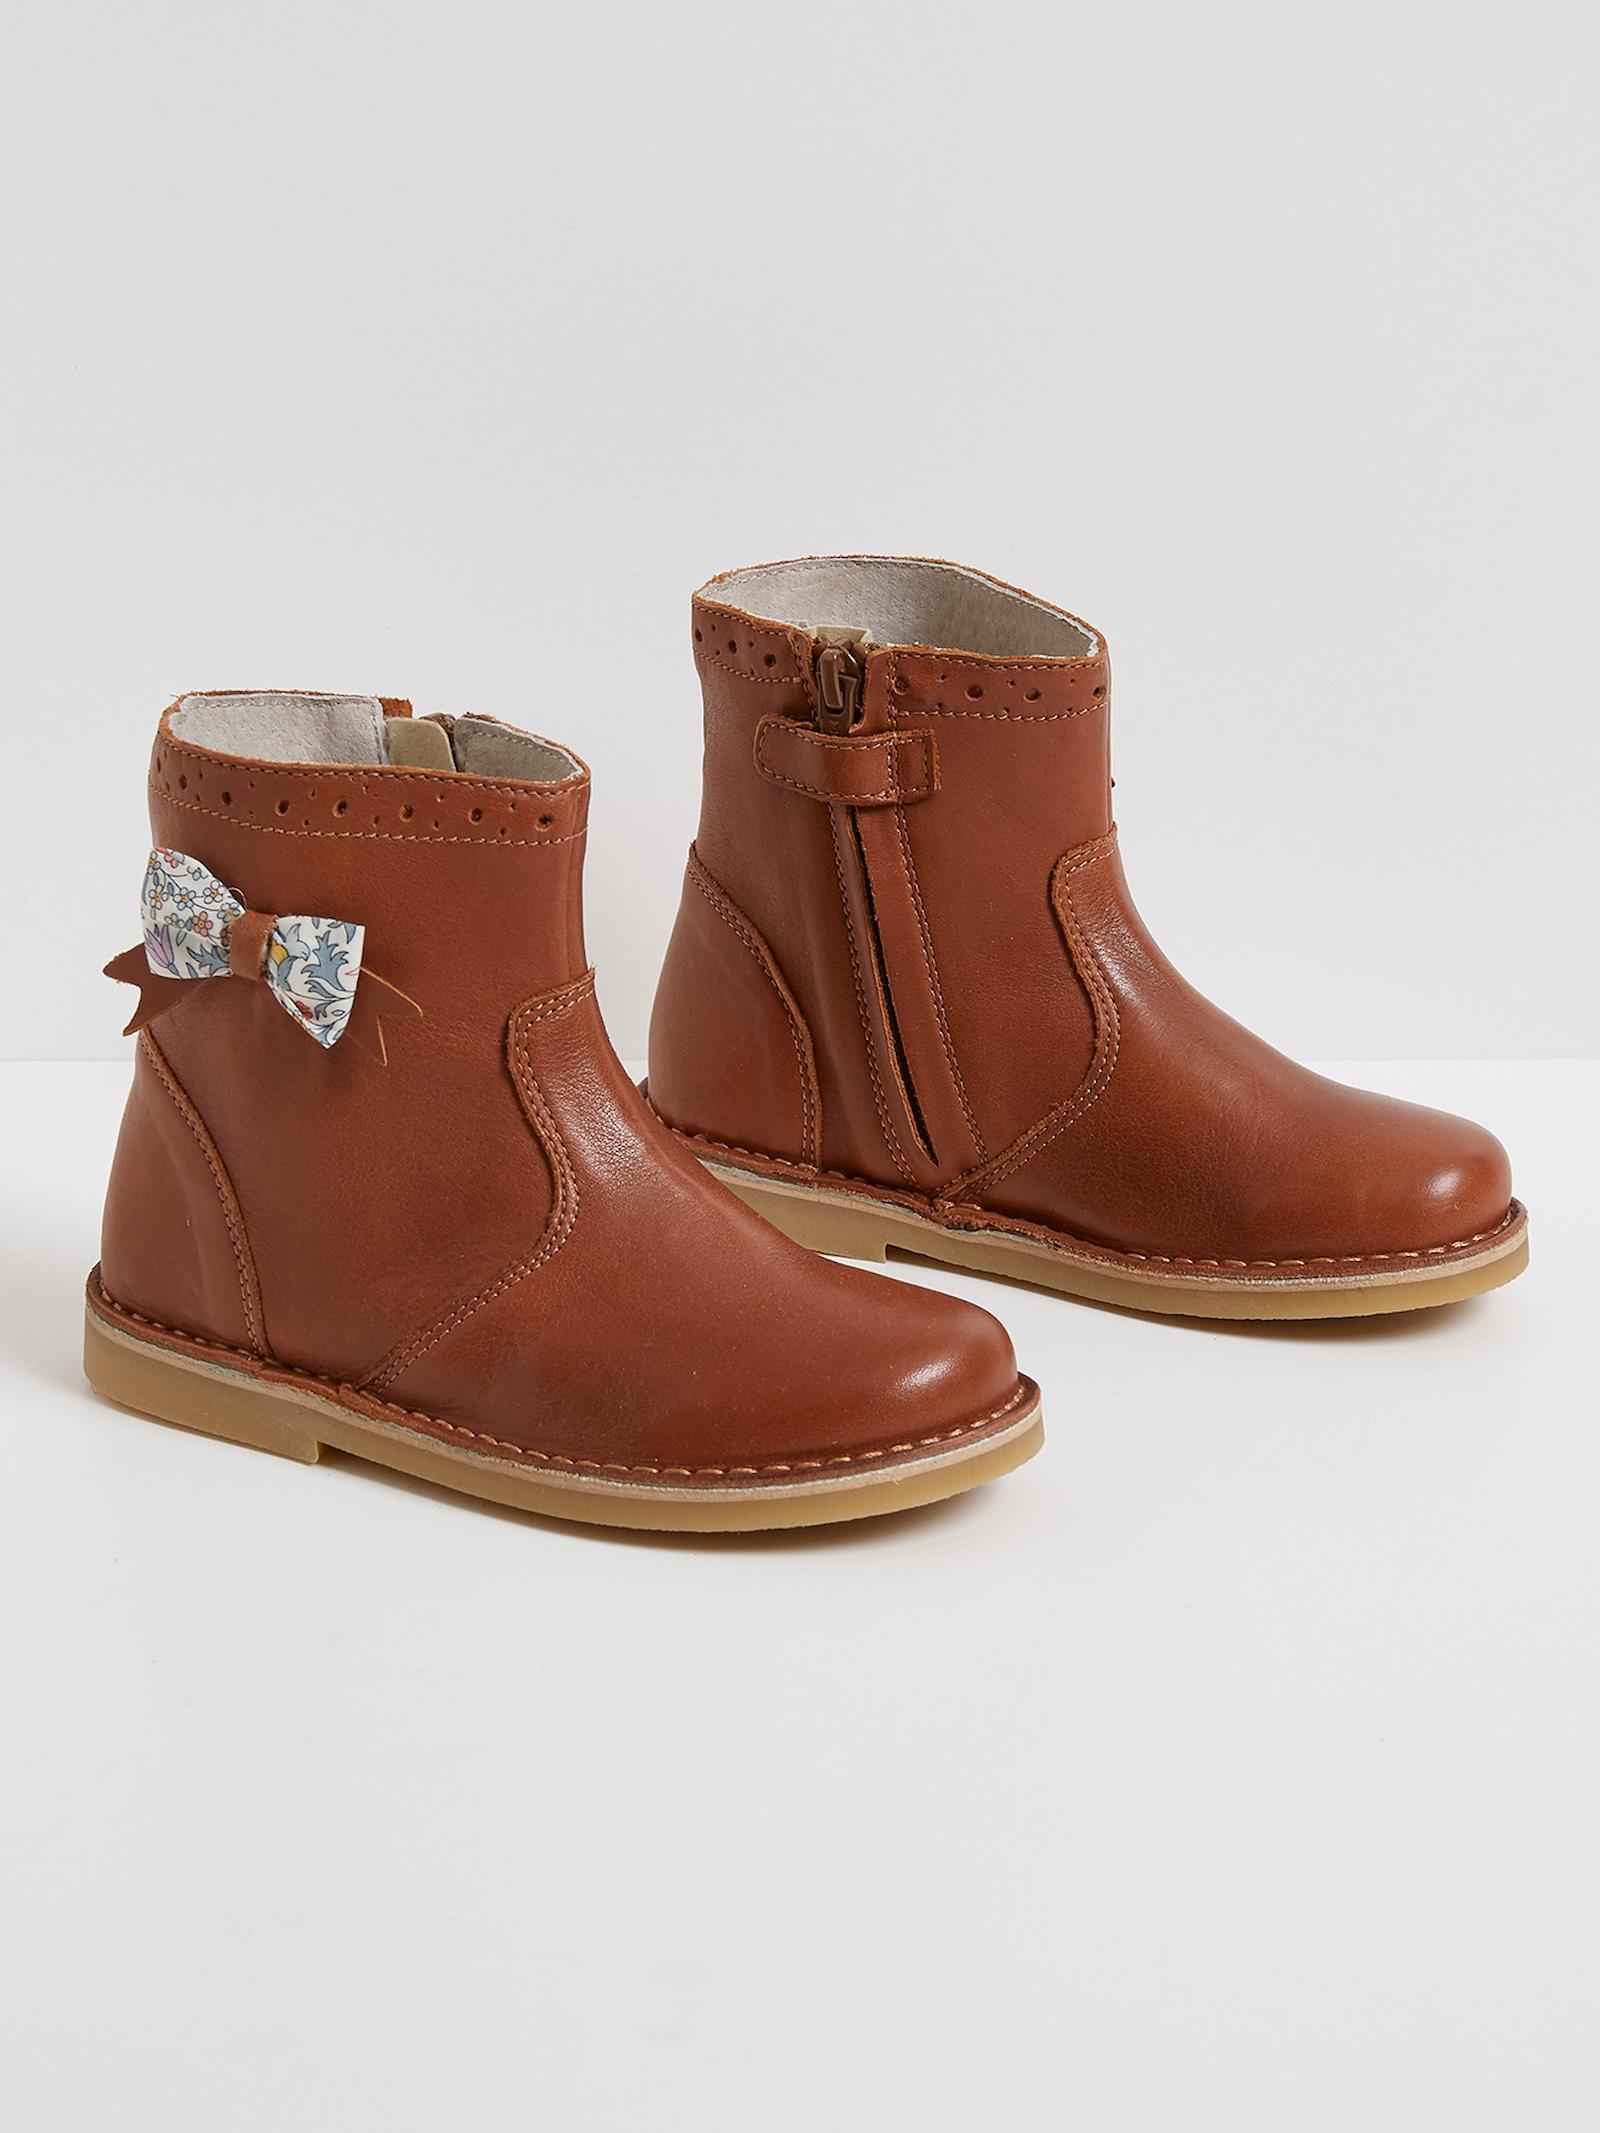 Filles Chaussures. FR